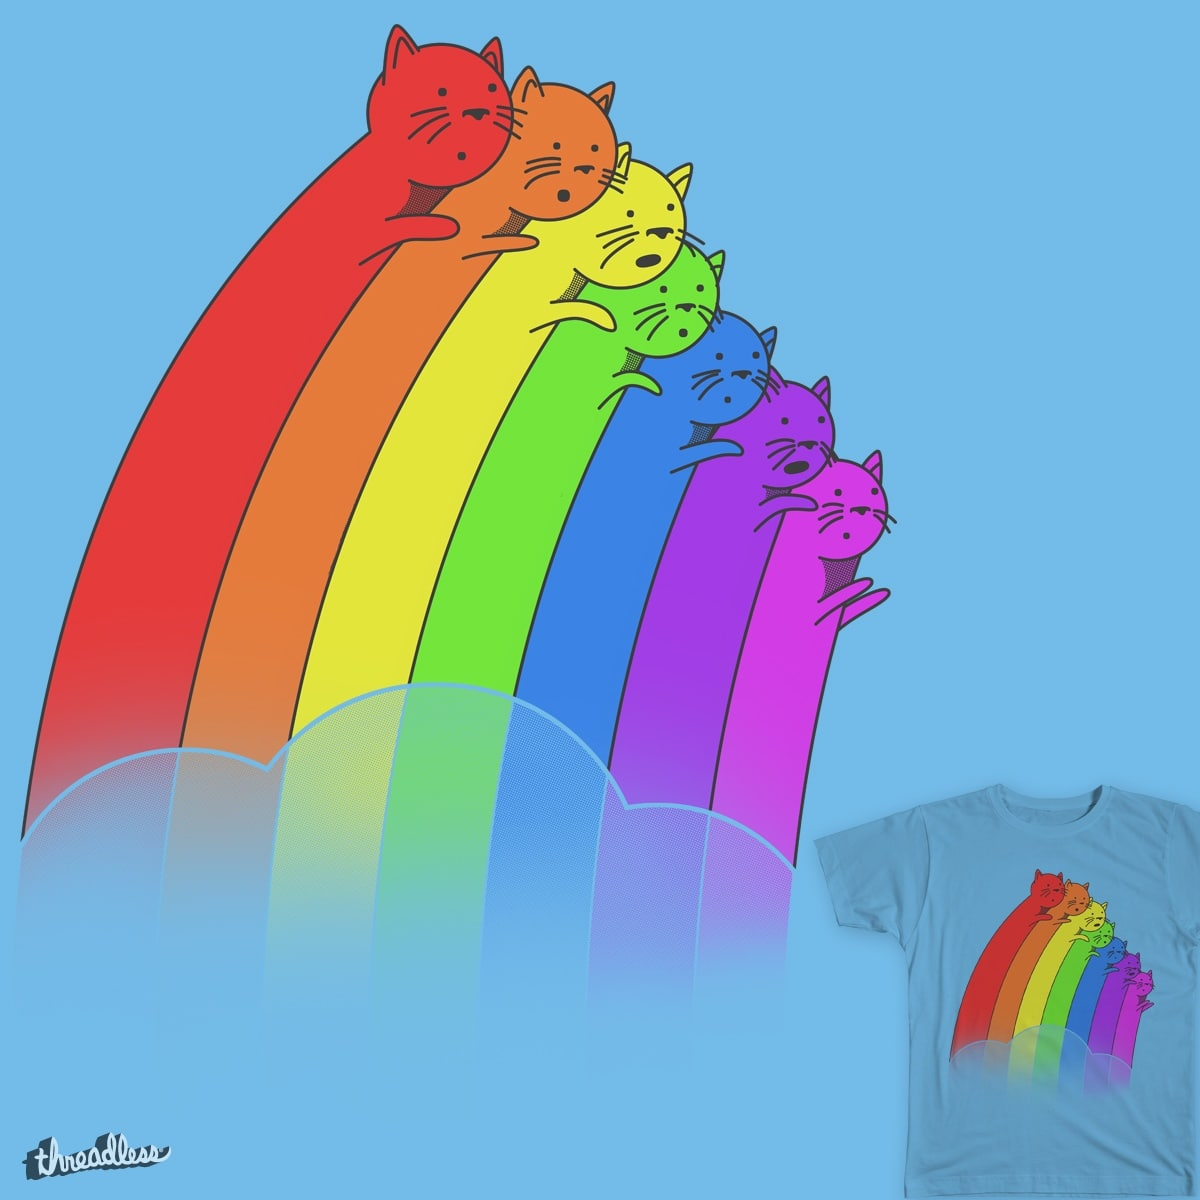 Rainbow Cats by benk_ing on Threadless